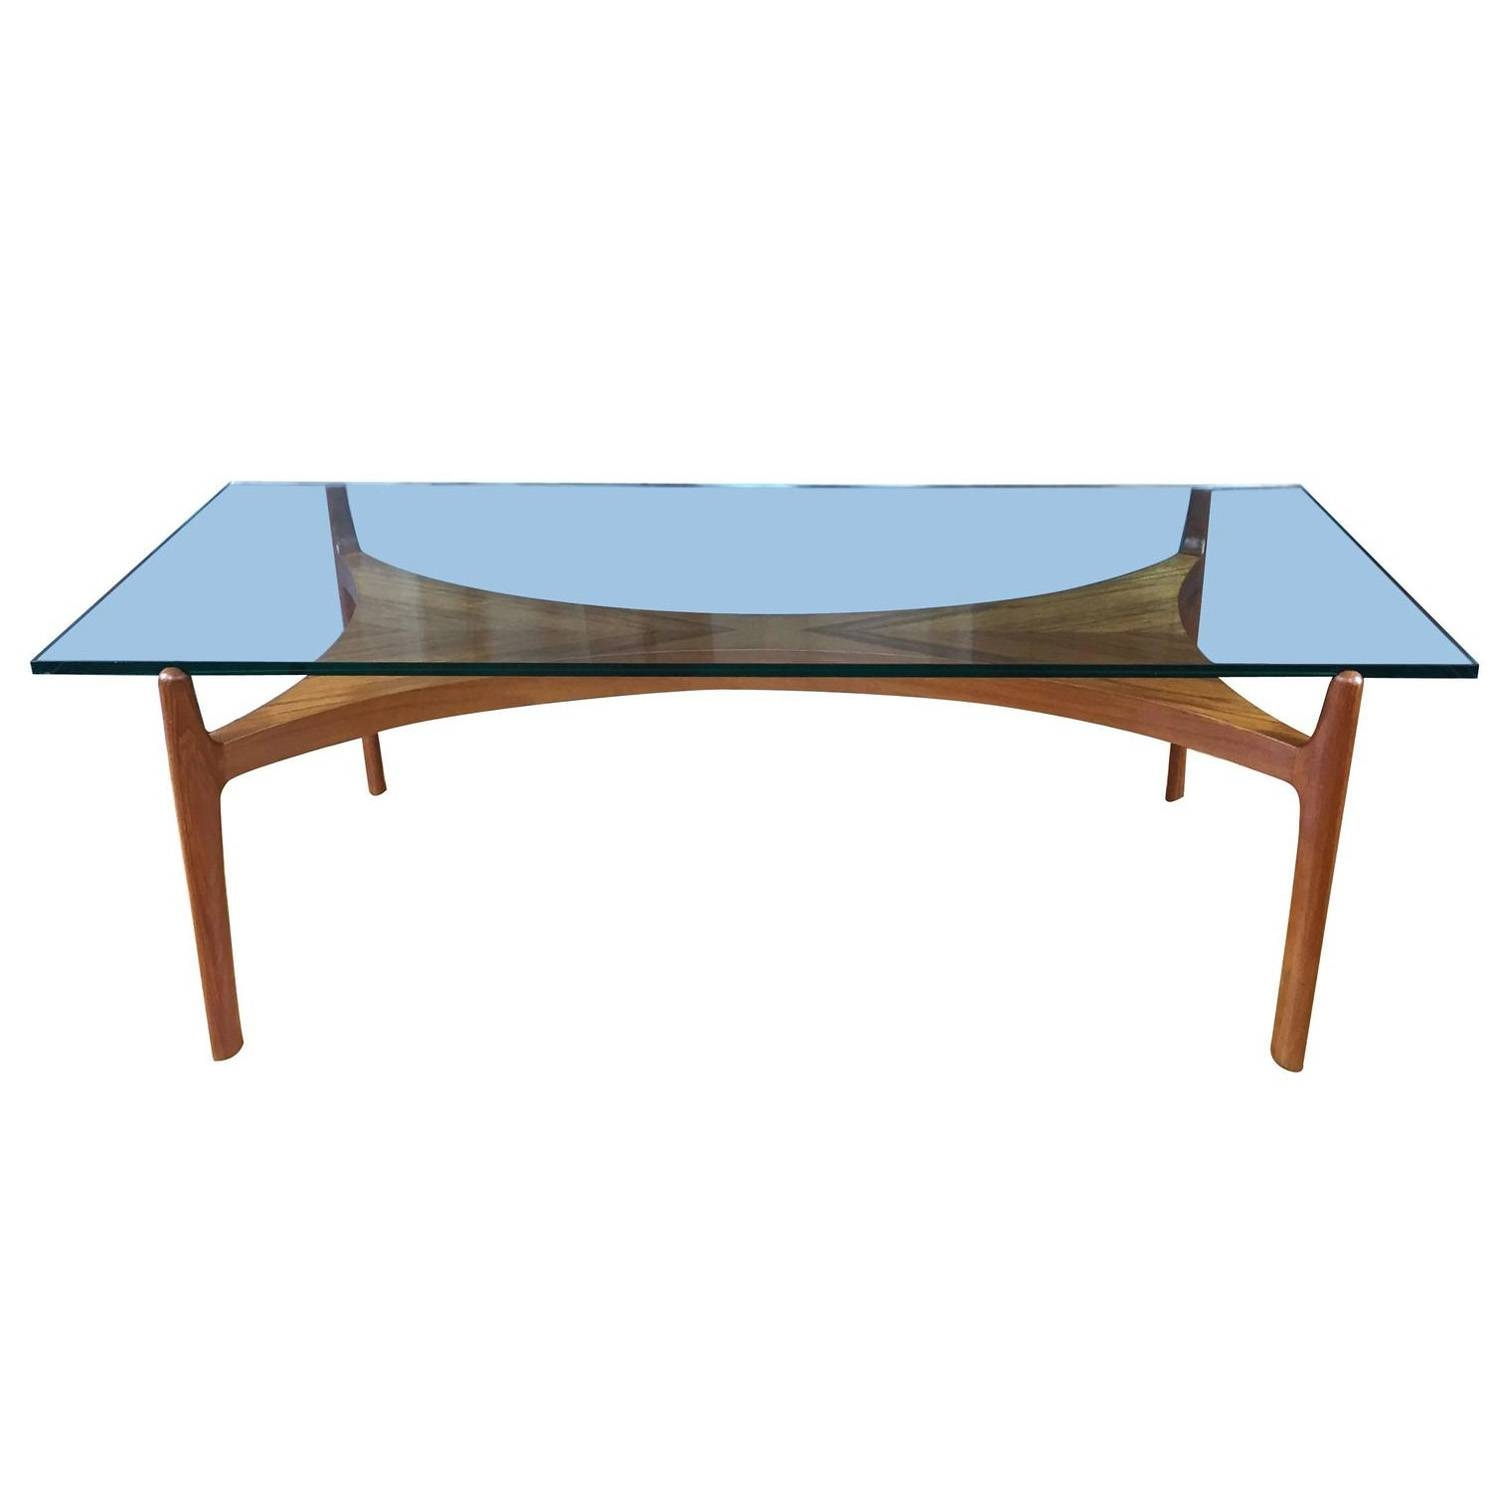 2017 Best of Retro Teak Glass Coffee Tables